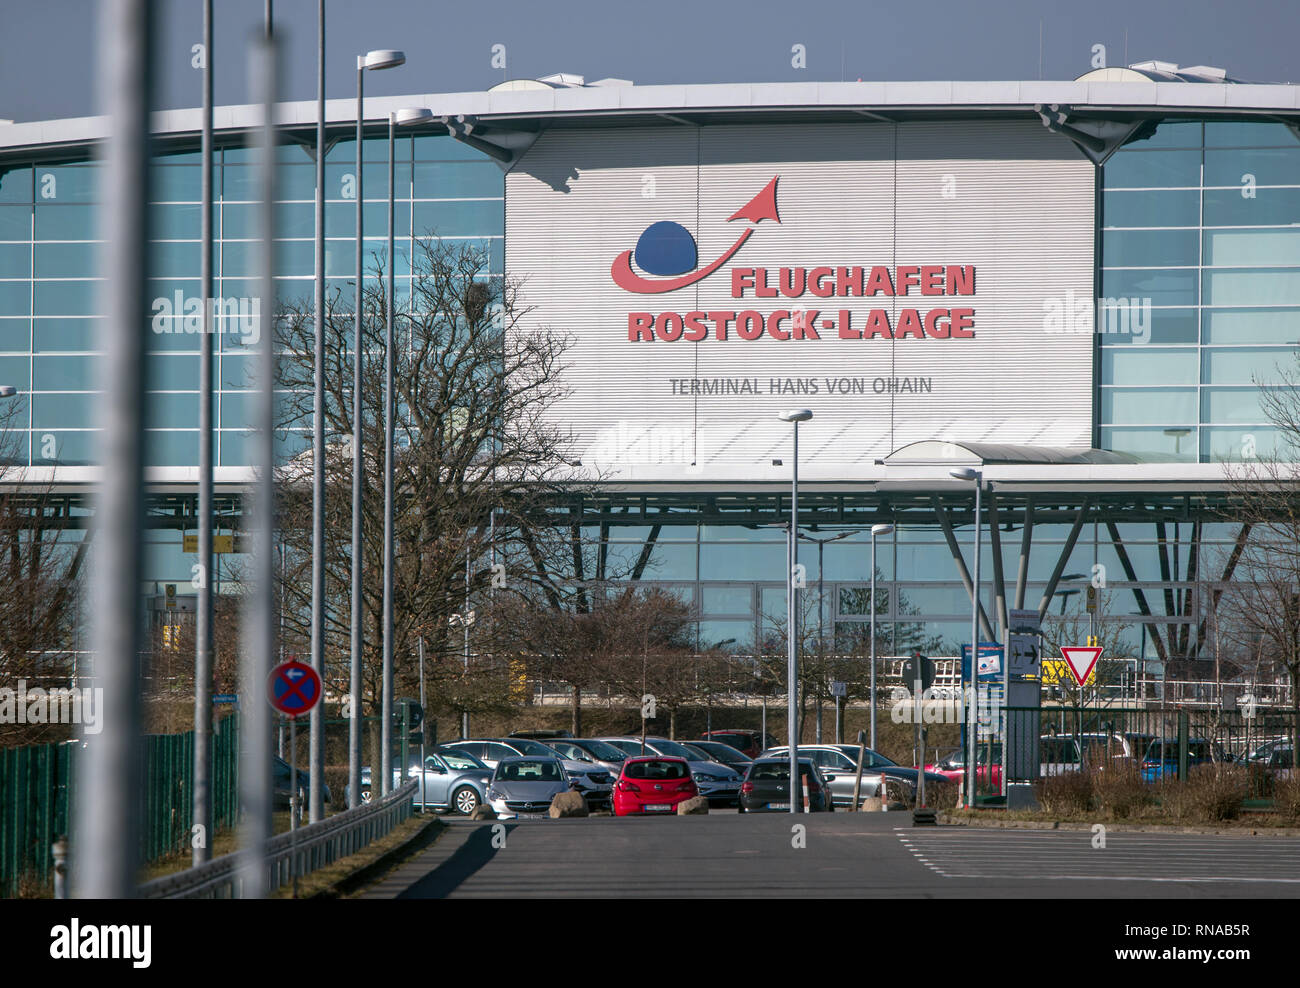 18 February 2019, Mecklenburg-Western Pomerania, Laage: Cars park in front of the check-in hall at Rostock-Laage airport. Following the insolvency of the British regional airline Flybmi and the holiday airline Germania, the airport's shareholders are discussing the economic situation. For the airport Rostock-Laage the Flybmi flights to Munich were the last regular connections. Photo: Jens Büttner/dpa-Zentralbild/ZB - Stock Image